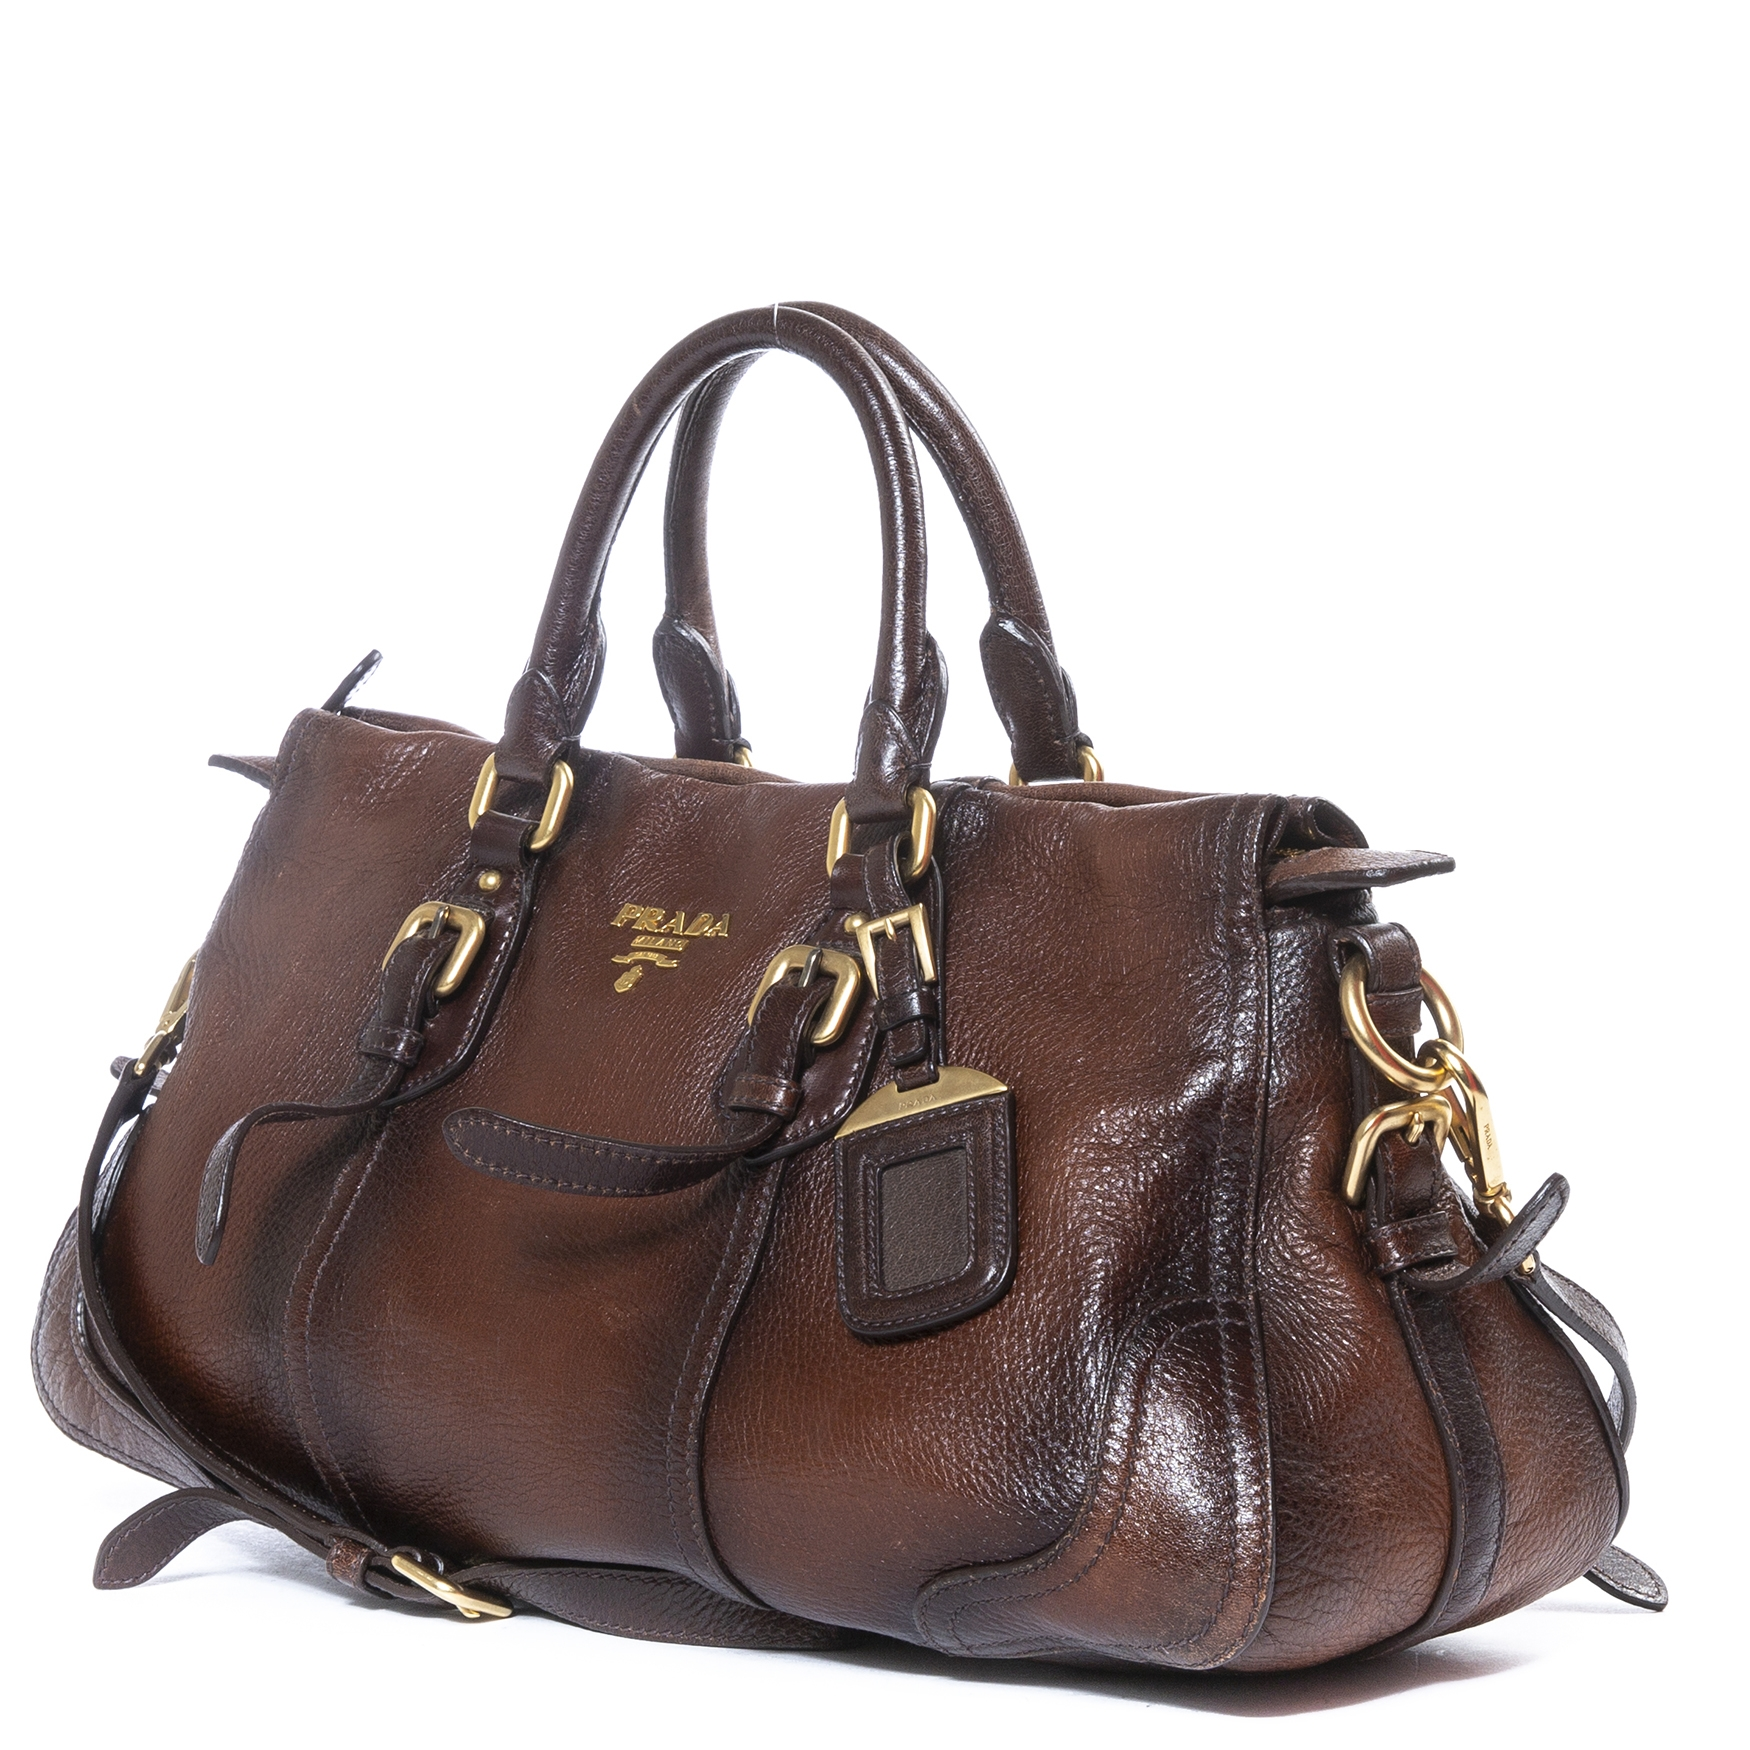 Prada Brown Leather Bowler Bag